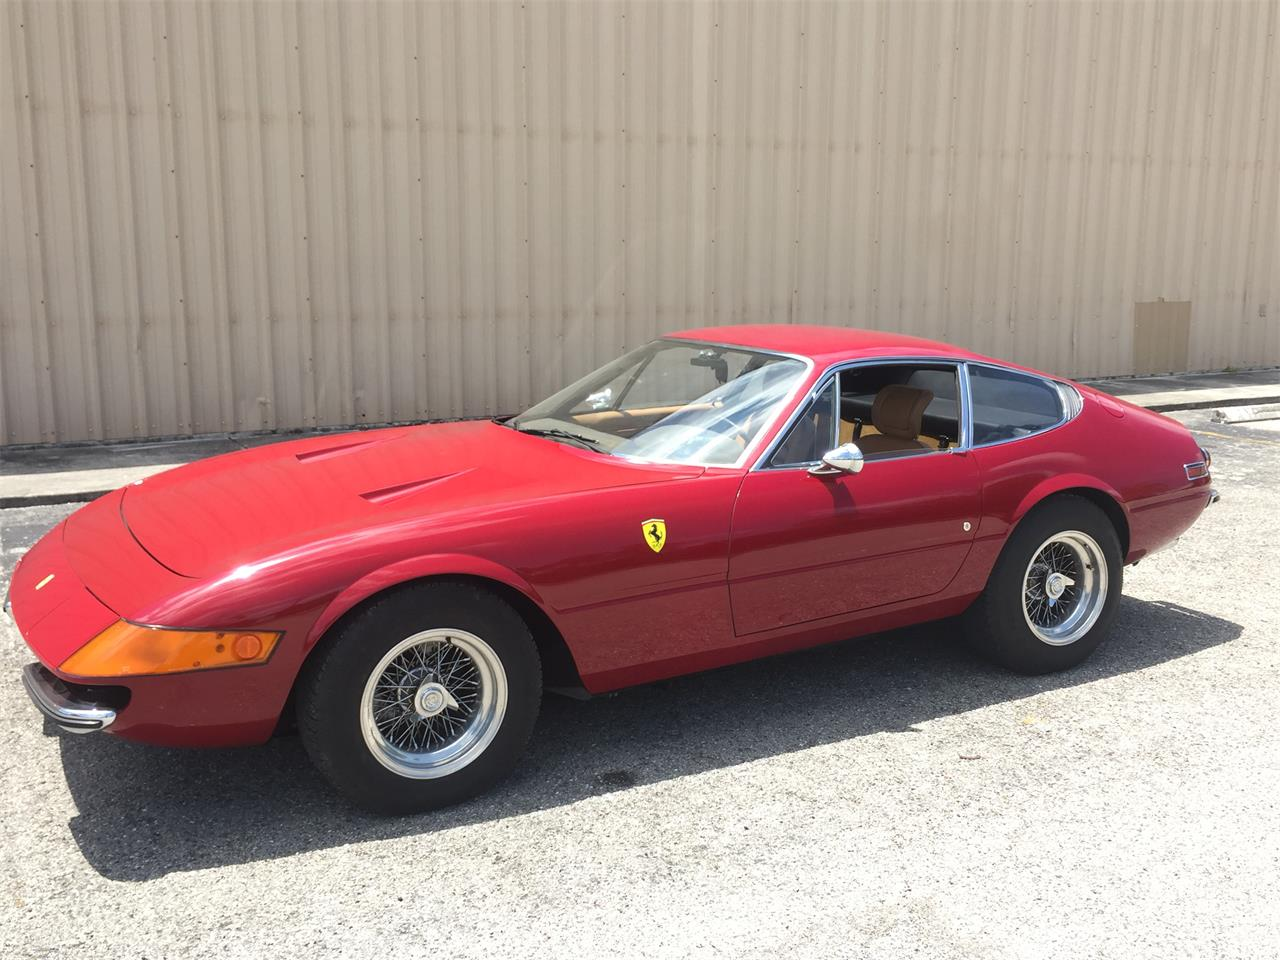 Large Picture of 1972 365 GTB - $645,000.00 Offered by a Private Seller - L3N2